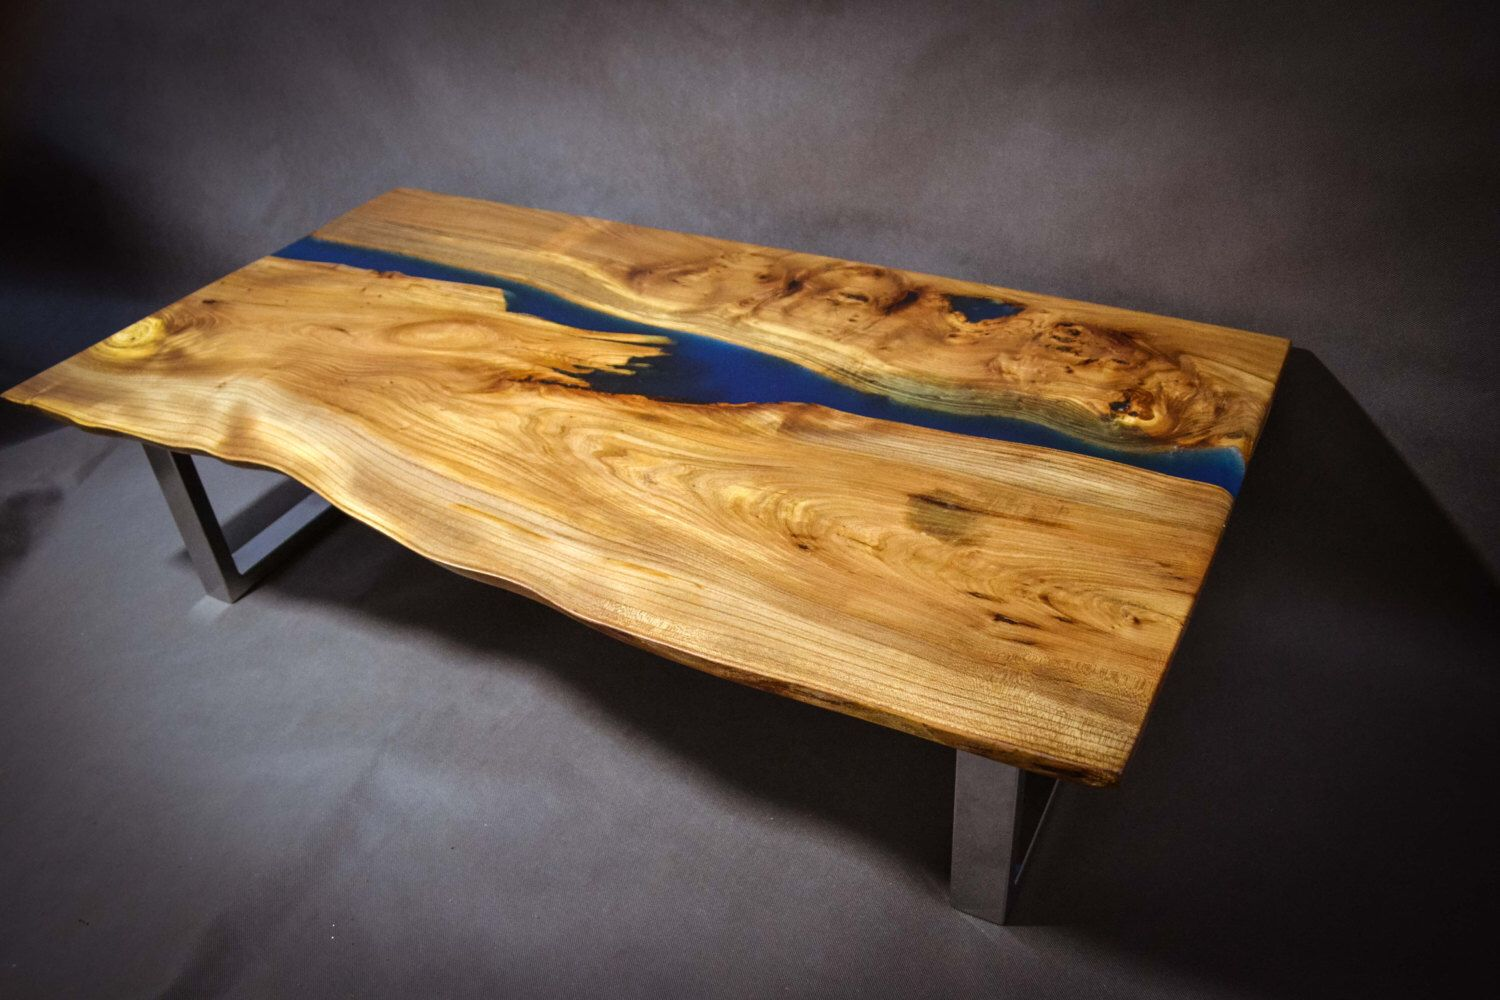 Poco Resina Live edge Elm wood slab coffee table with resin inlays